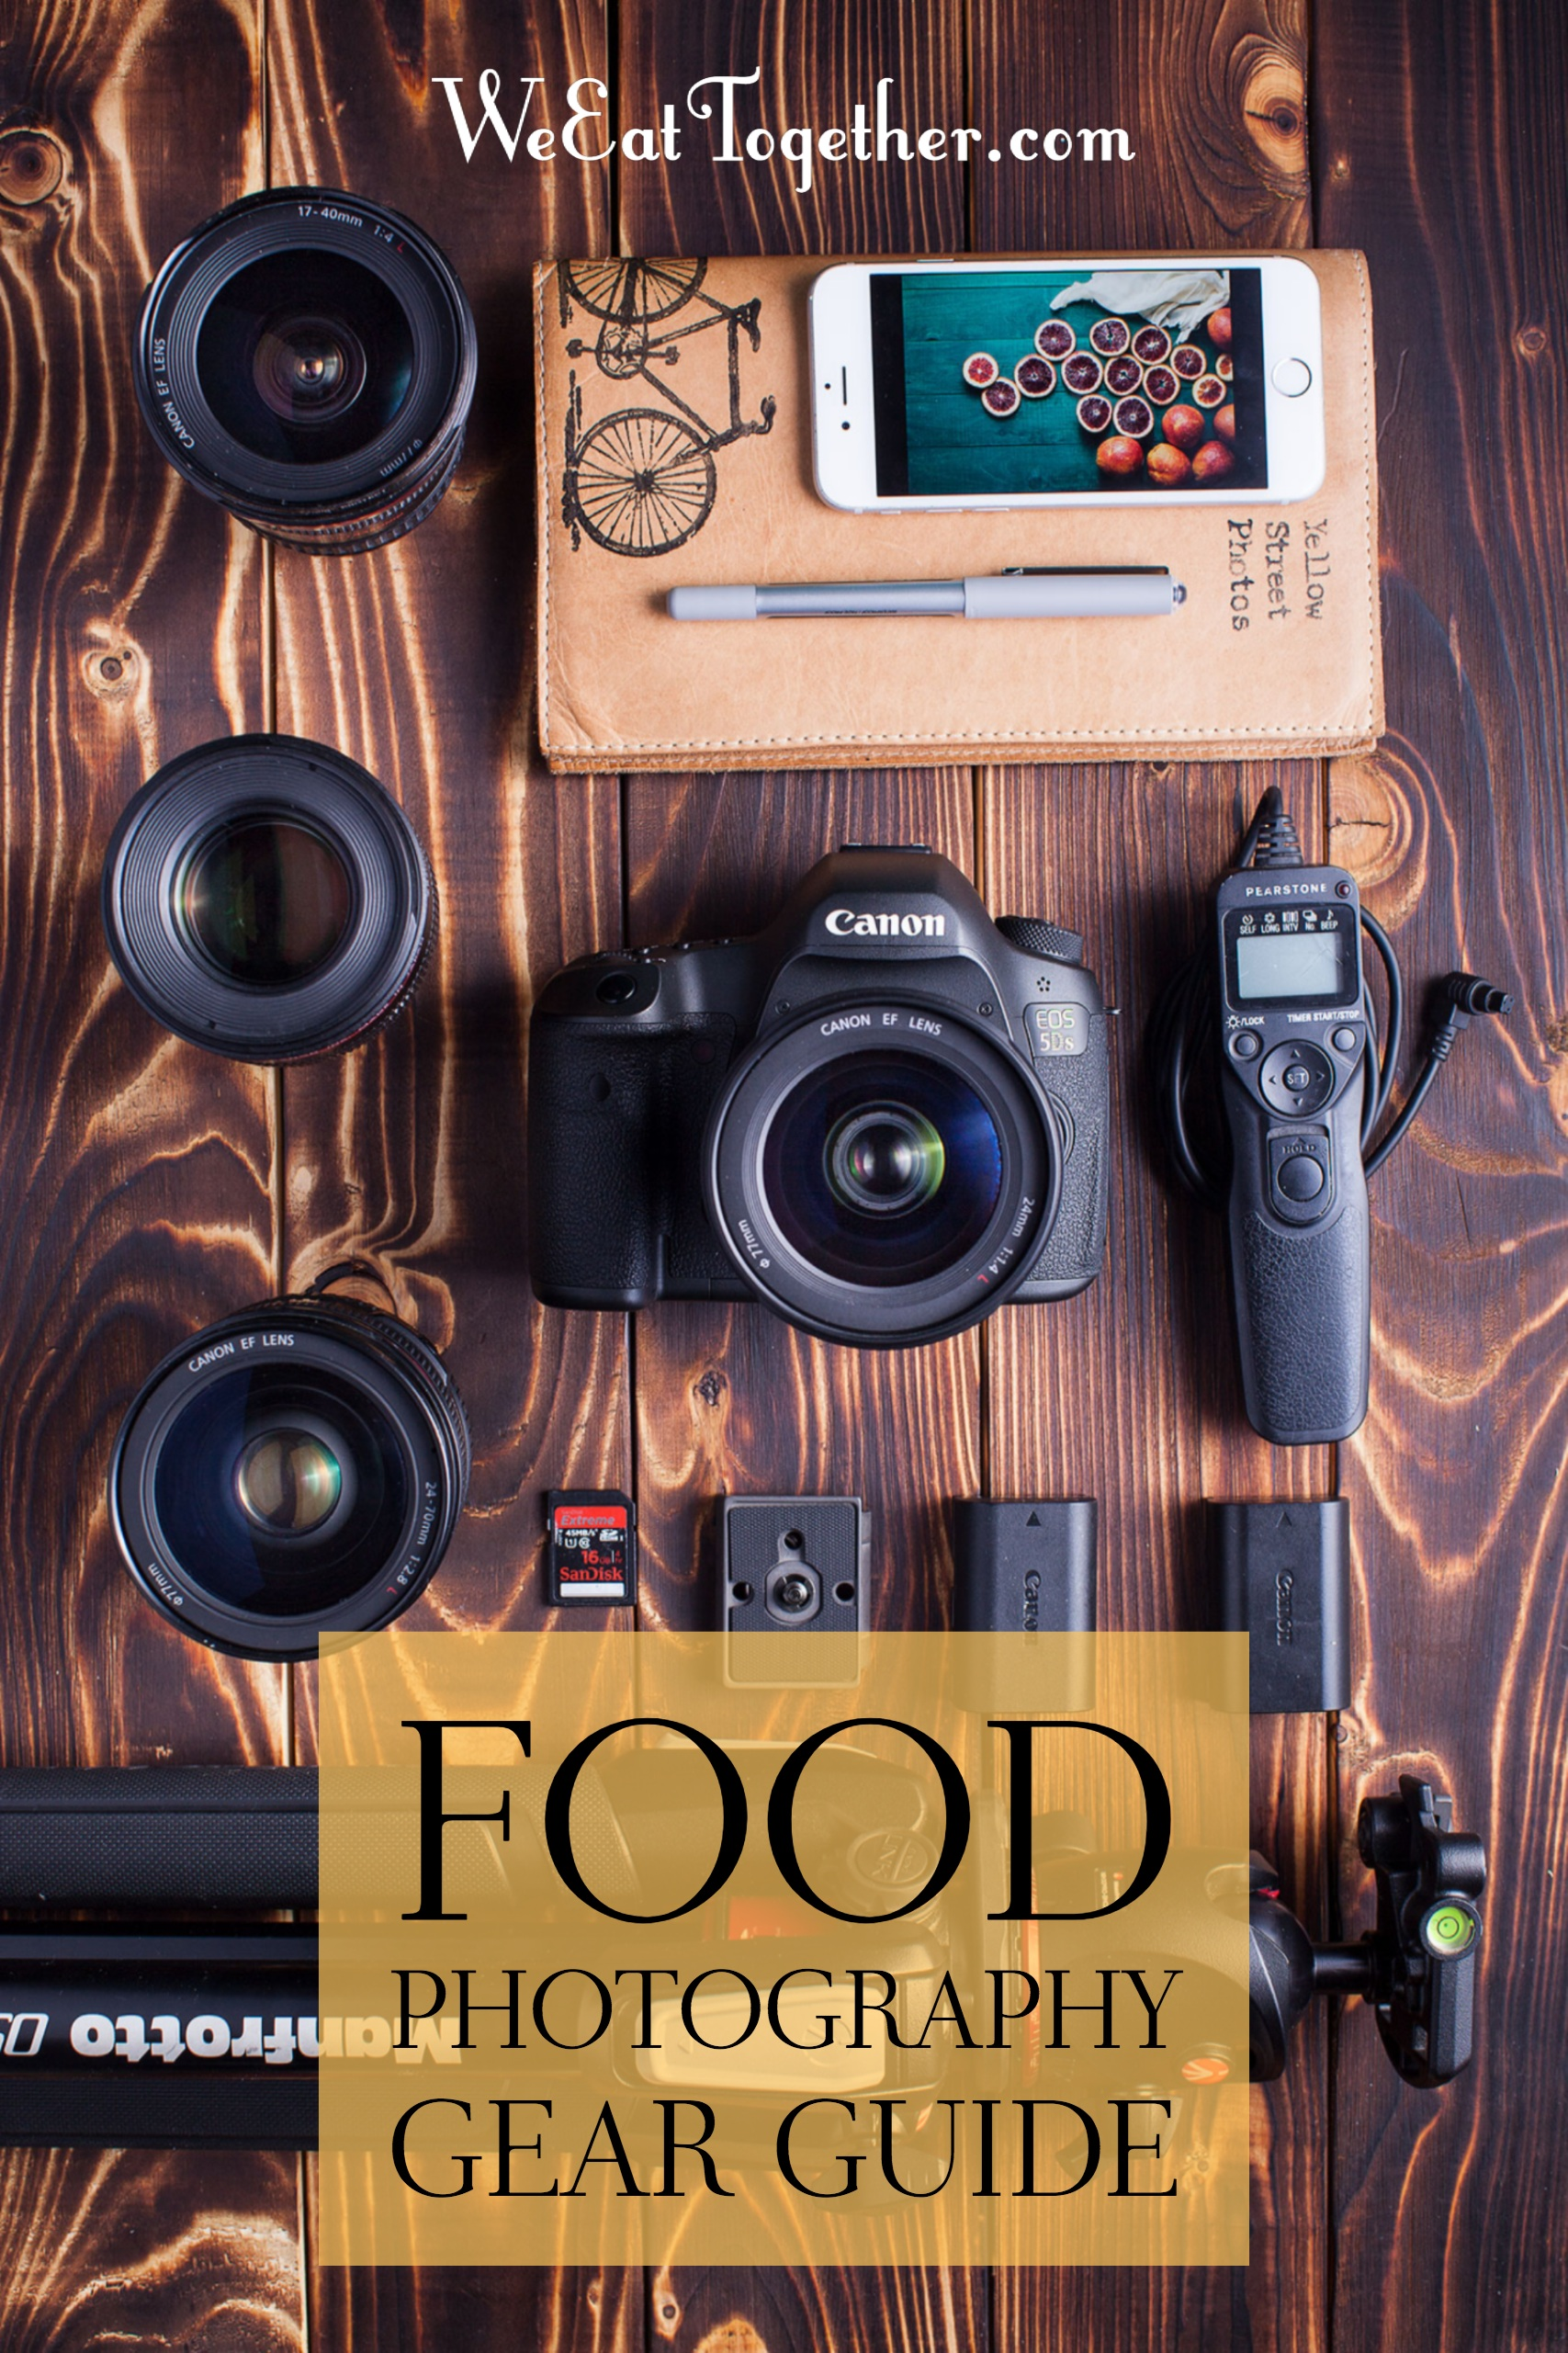 food photography gear guide we eat together